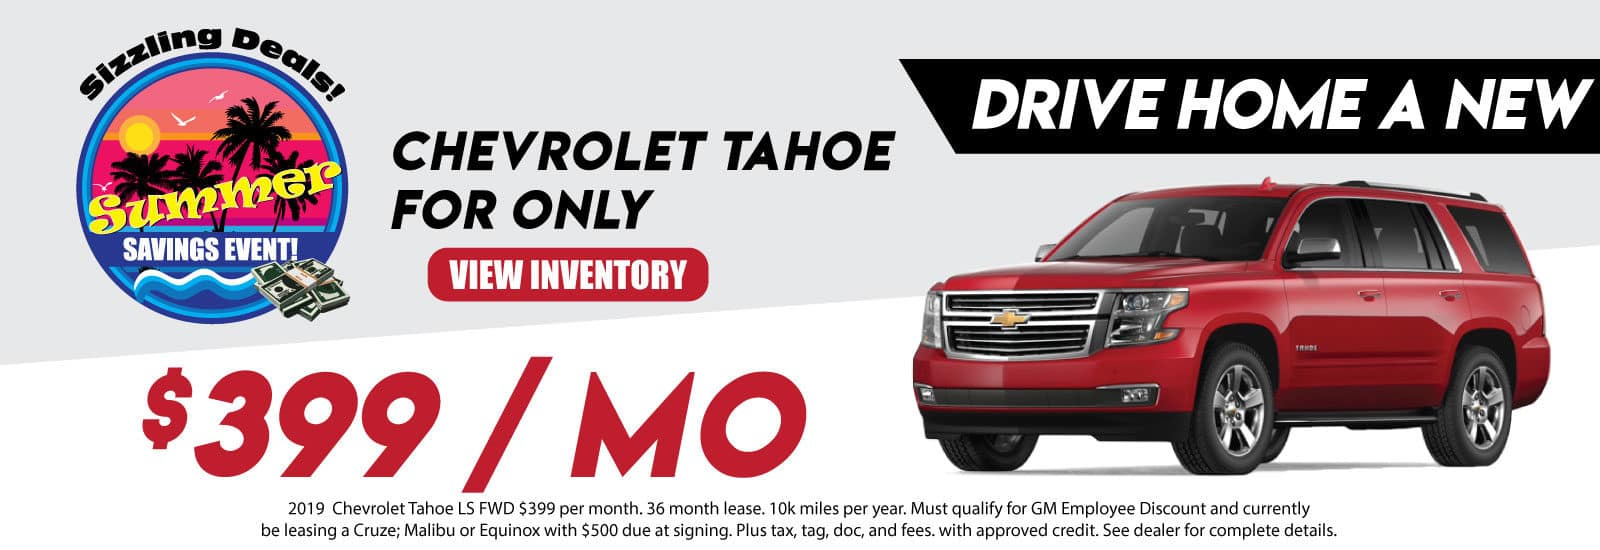 2019-Chevrolet-Tahoe-Web-Banner-June-2019